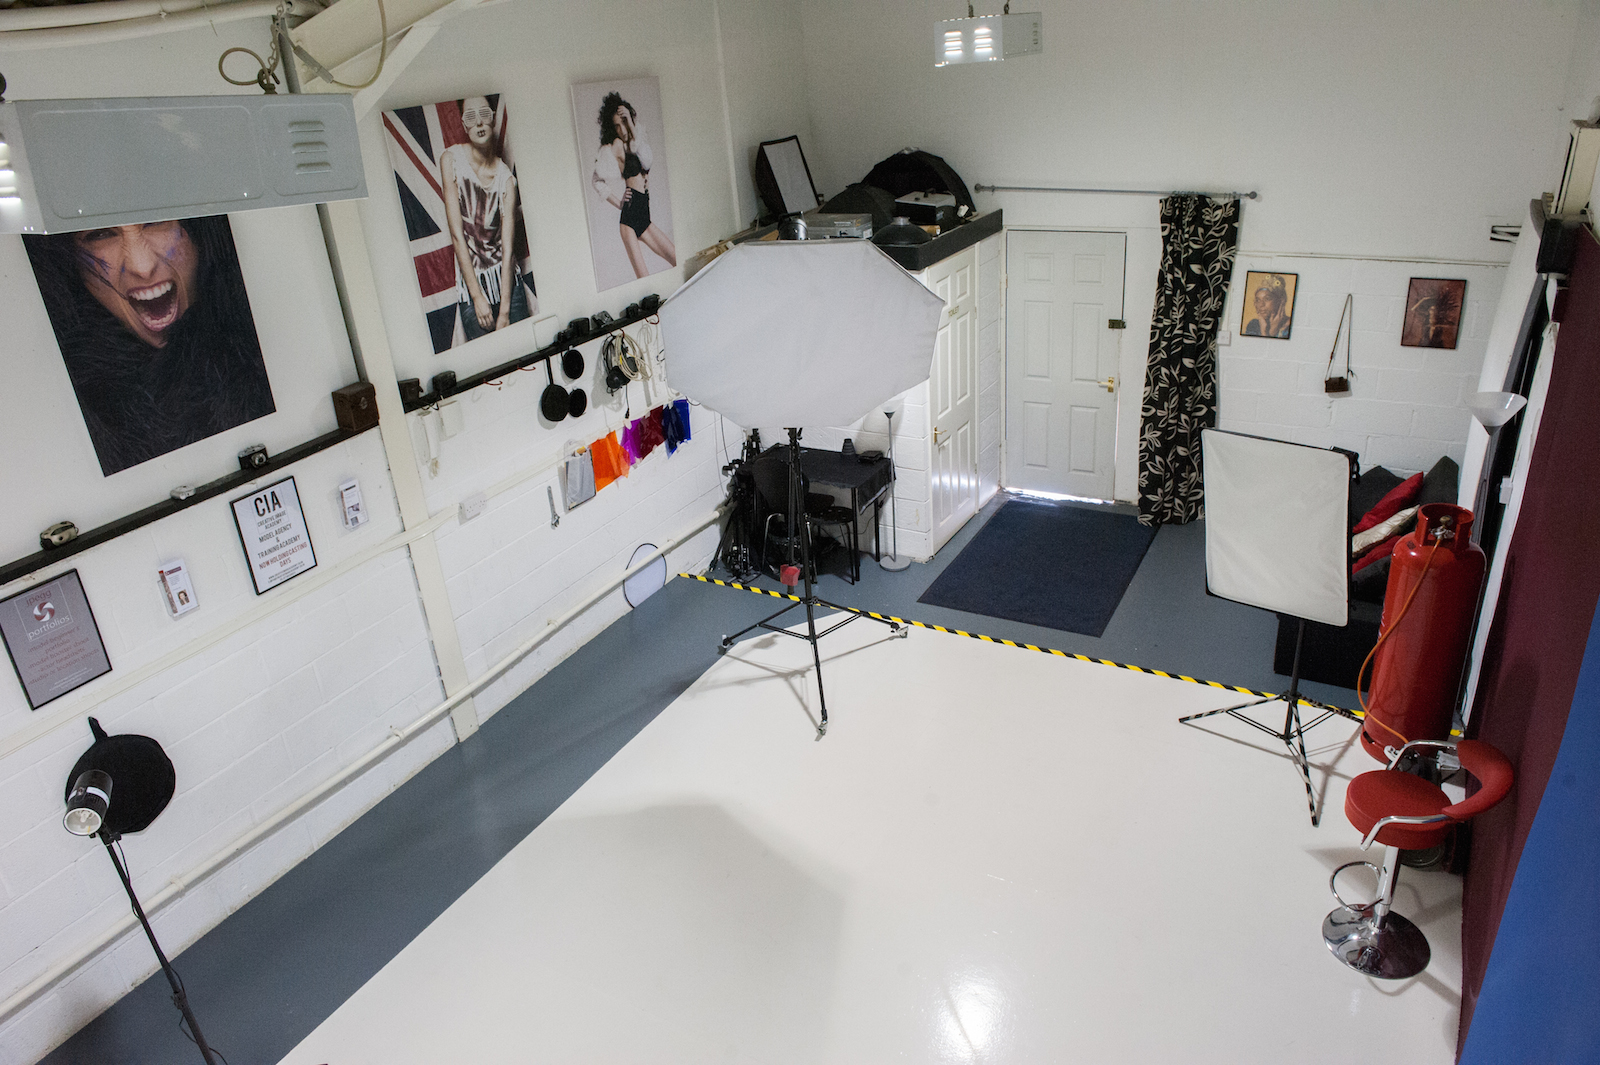 Photographic studio hire, model casting Creative Image